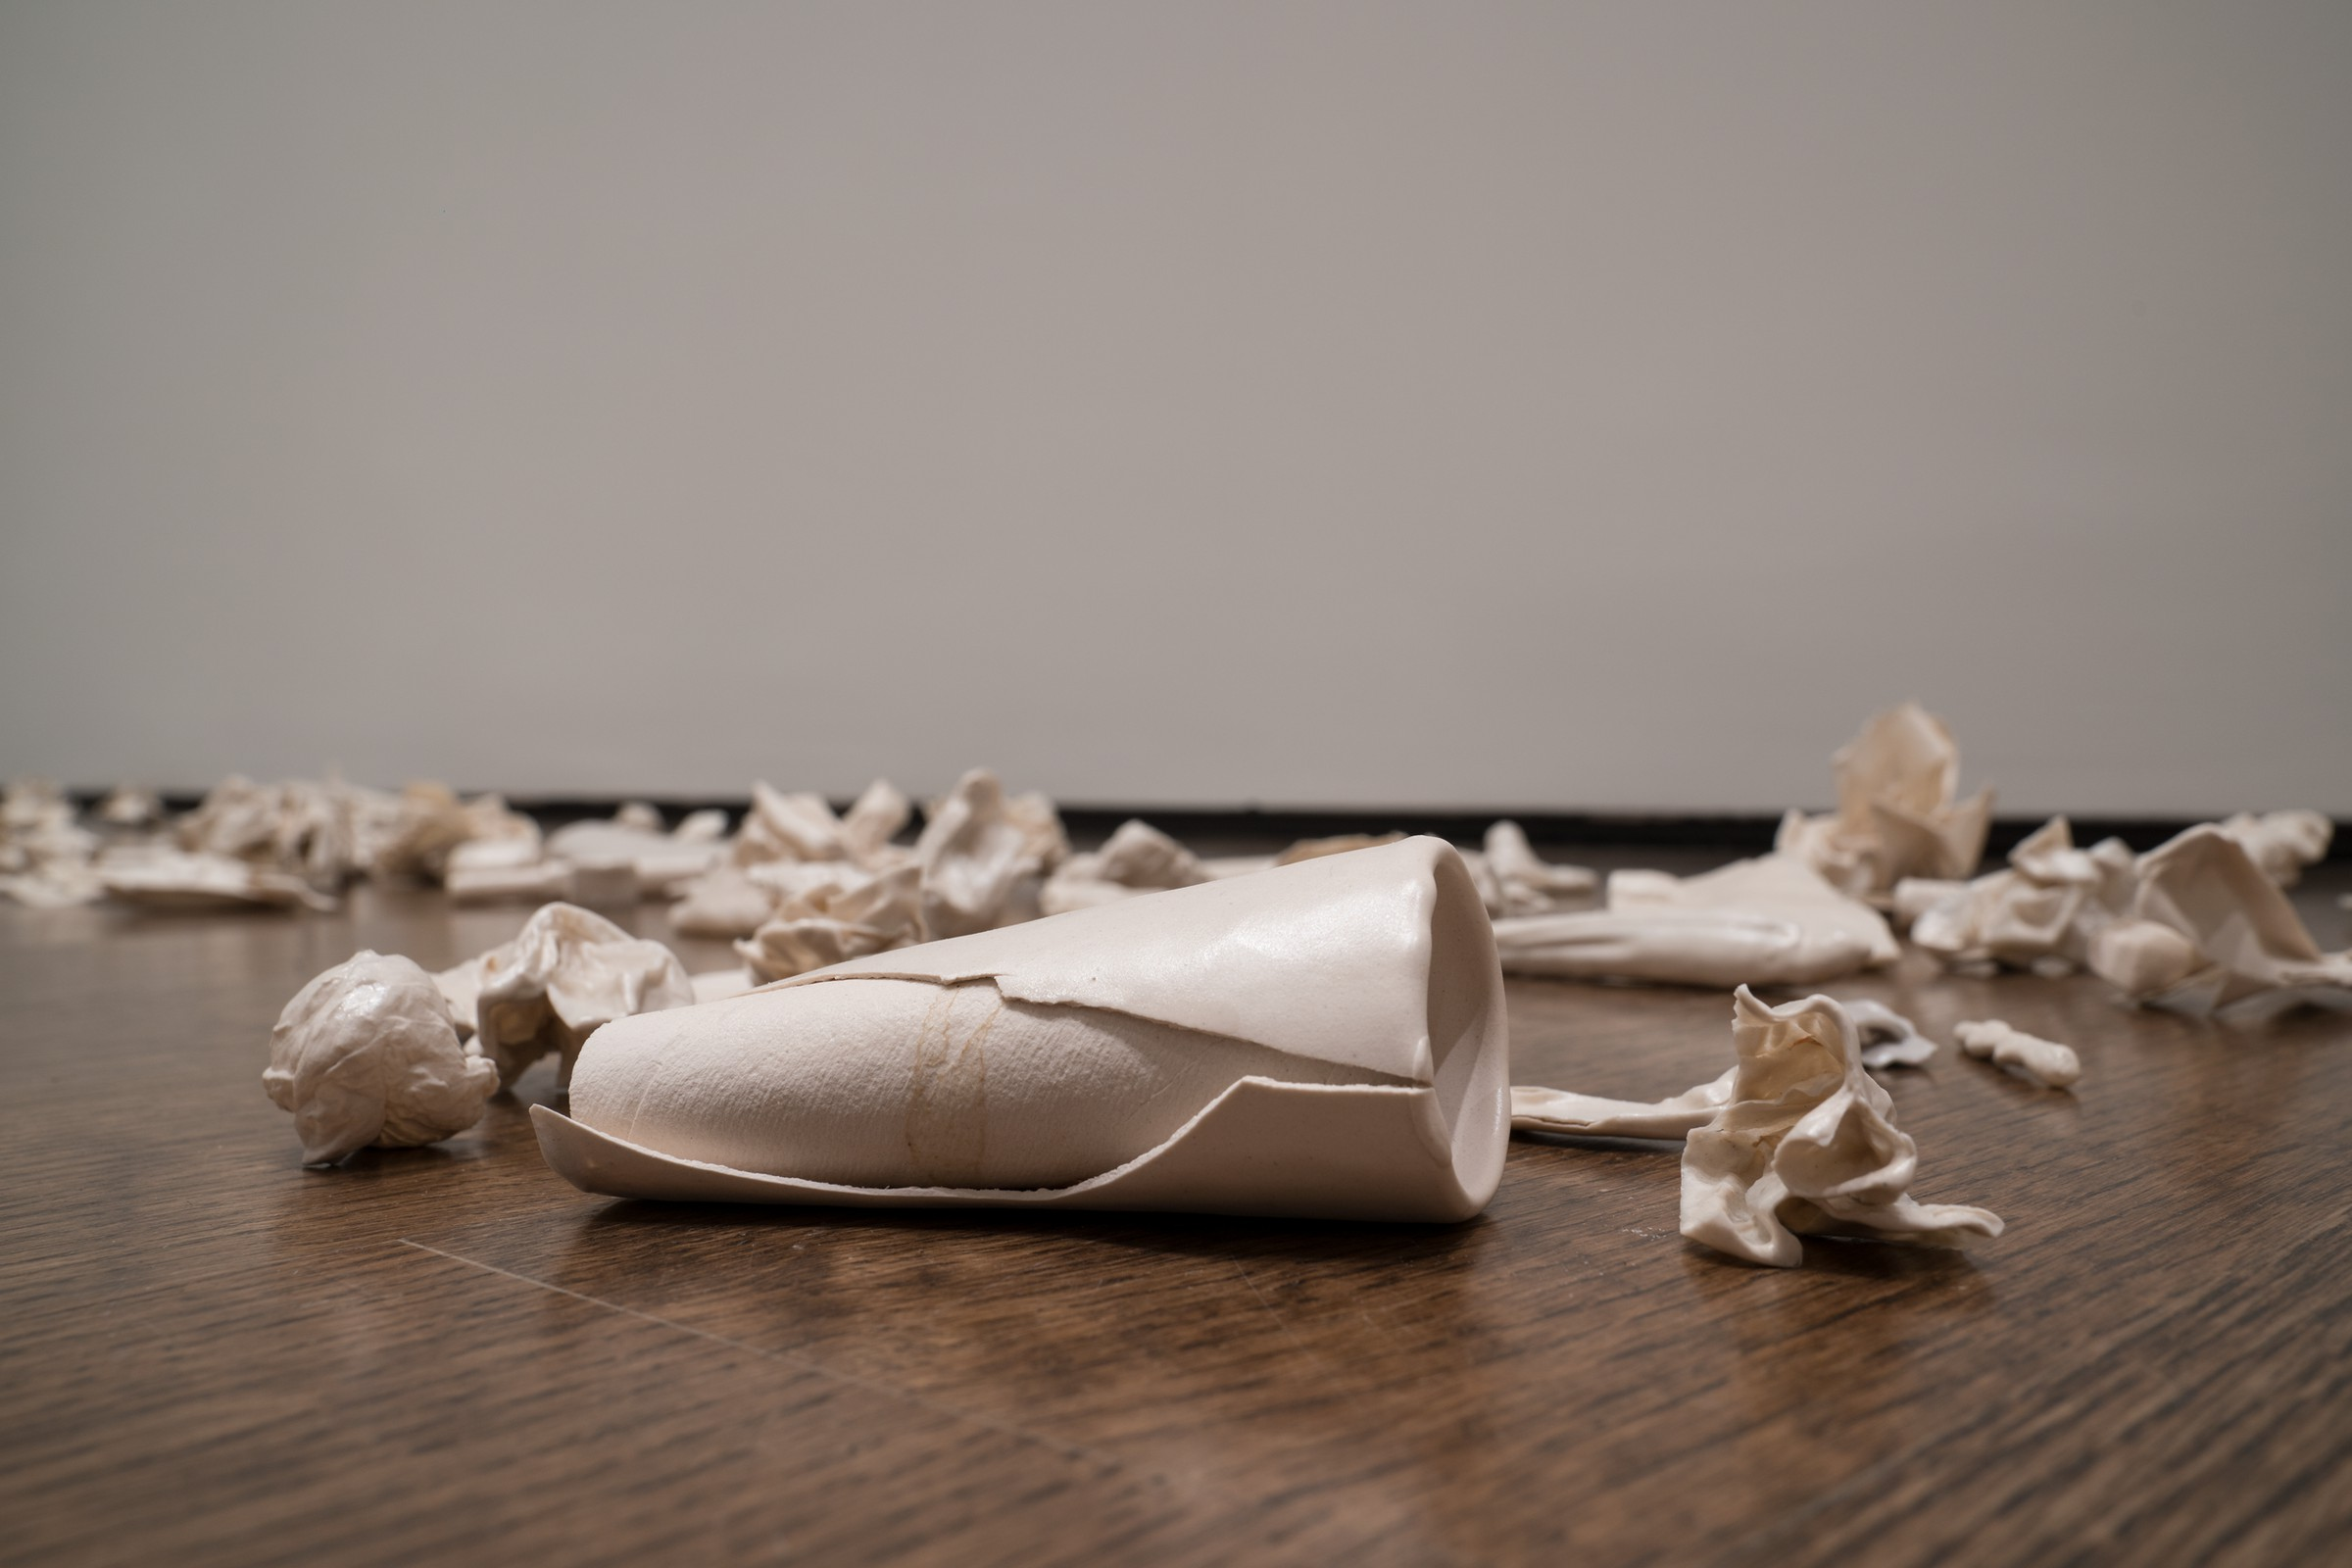 Several white porcelain objects are scattered on a wood floor. Some of the objects are recognizable, such as a toilet paper roll and crumpled and folded pieces of paper.